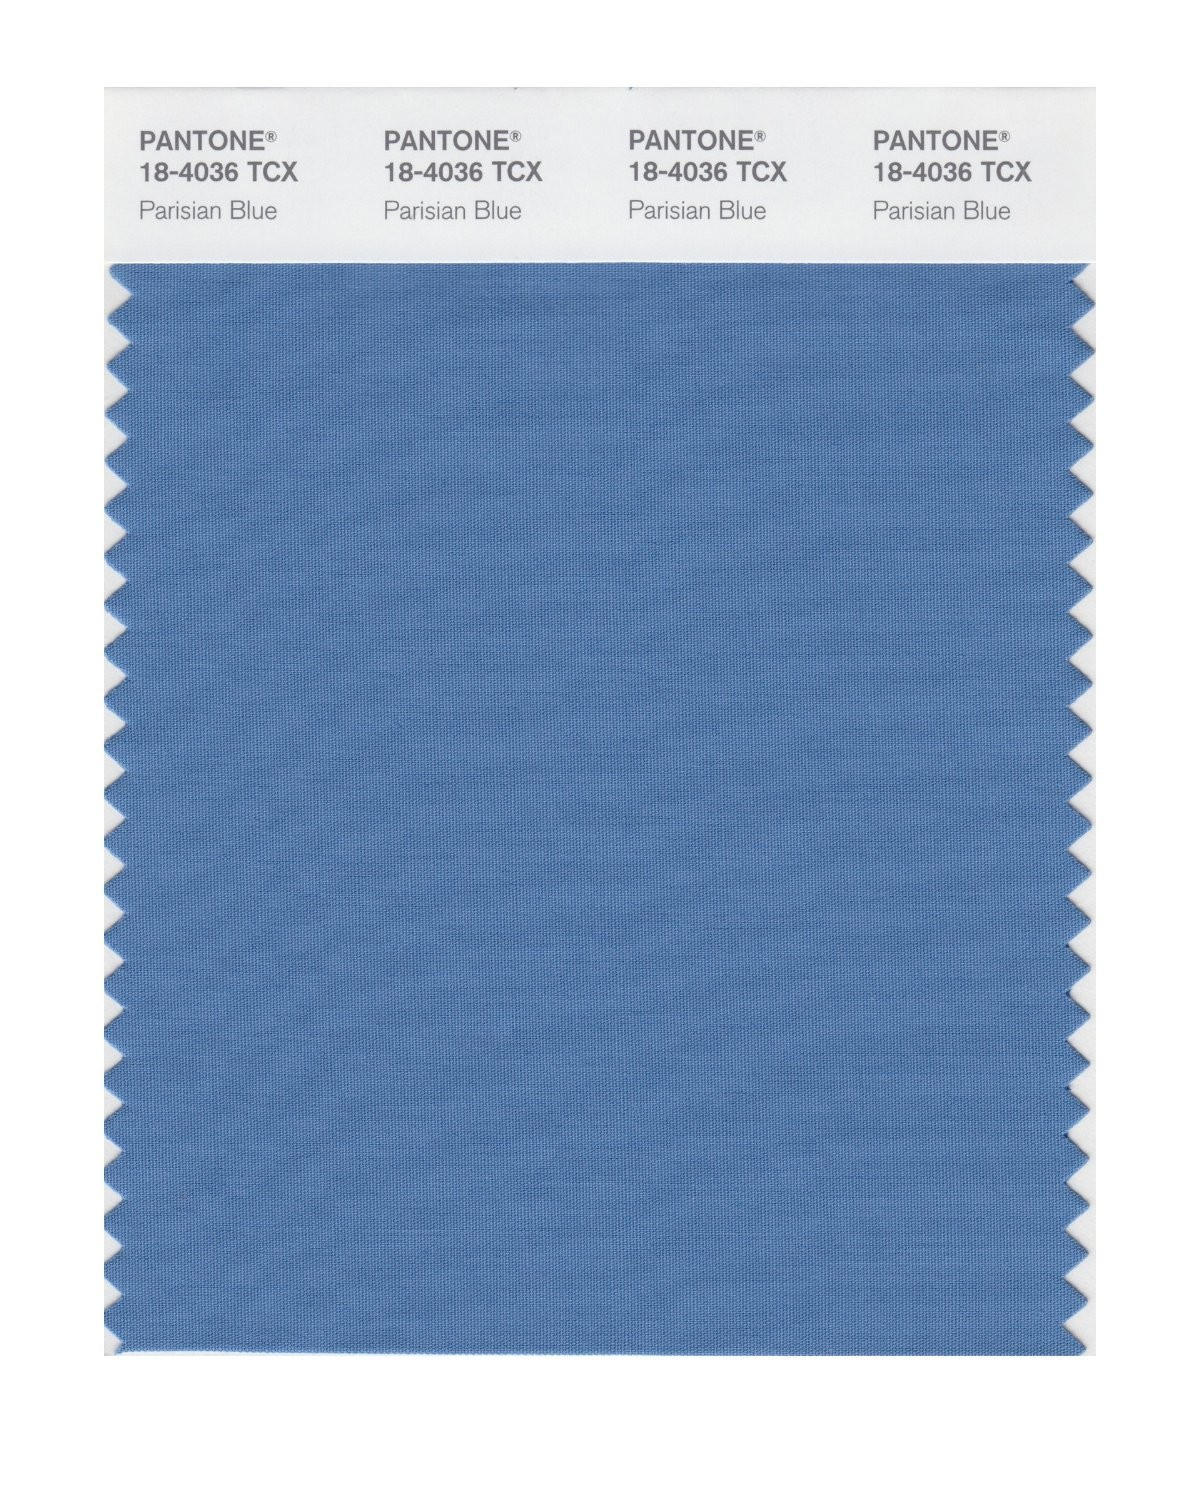 Pantone 18-4036 TCX Swatch Card Parisian Blue